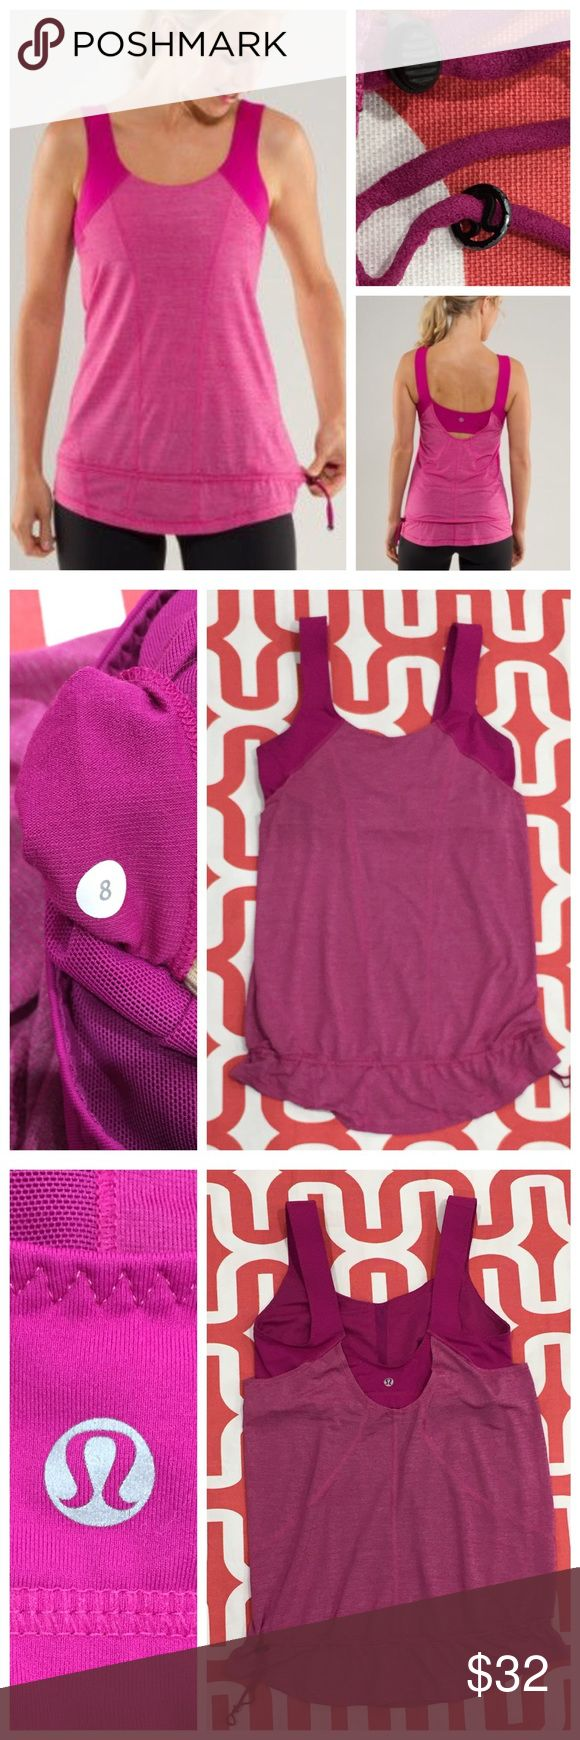 Lululemon Run For Your Life tank Heathered Raspberry (color does to photograph well - stock photo is best representation). Excellent preloved condition. Only flaw is some paint chipping on Lulu button at cinch - see photo. Loose fitting with medium support bra. 4-way stretch Power Luxtreme with Silverescent mesh. Cinchable drawcord at hem. Does not include cup inserts. No trades. No PayPal. Price firm unless bundled. lululemon athletica Tops Tank Tops